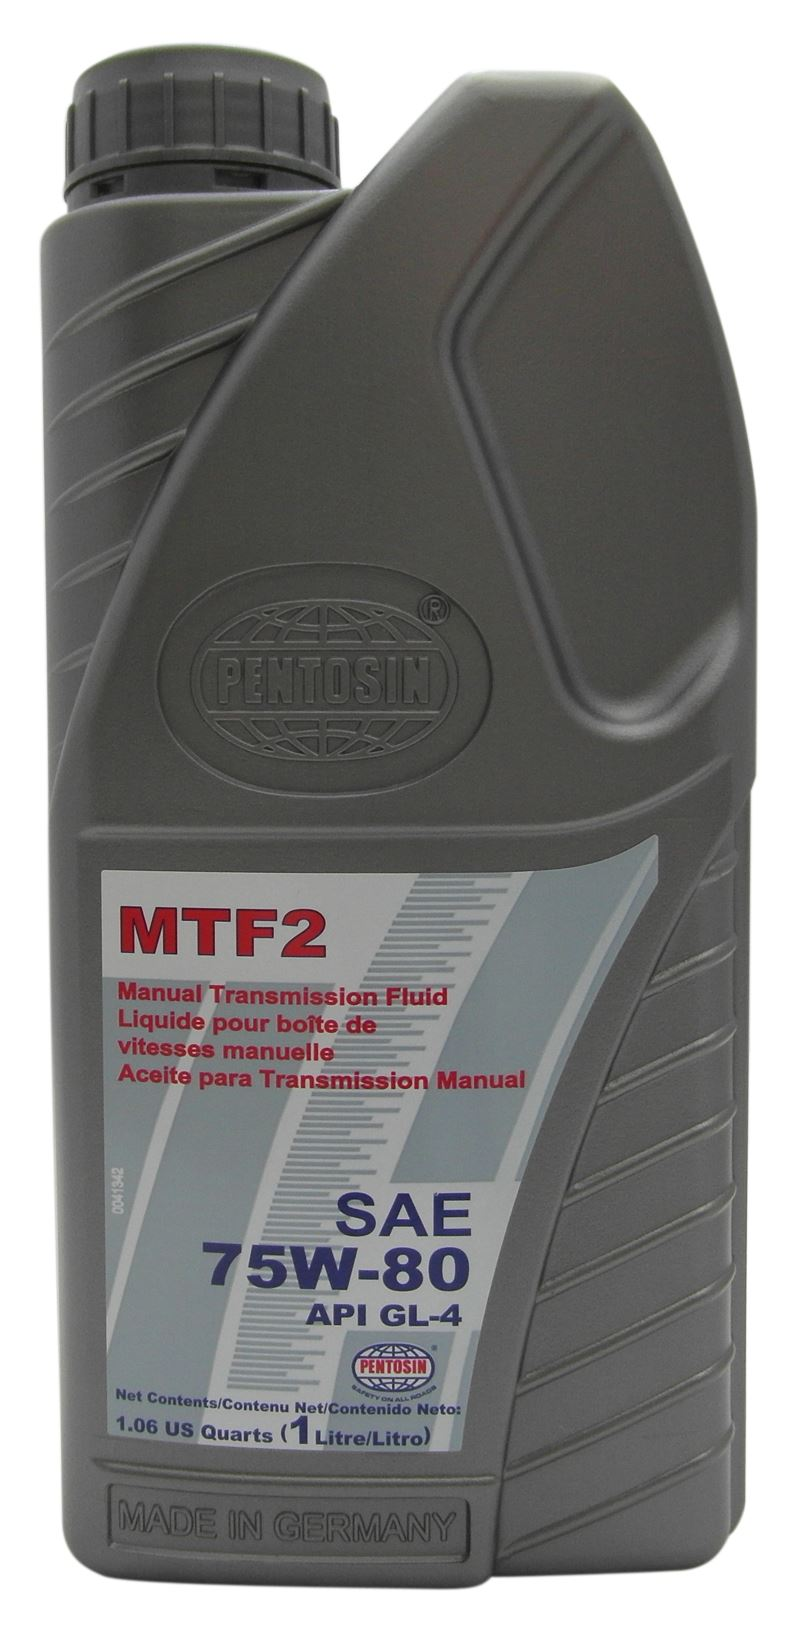 pentosin mtf 2 sae 75w80 synthetic manual gearbox oil 1l. Black Bedroom Furniture Sets. Home Design Ideas